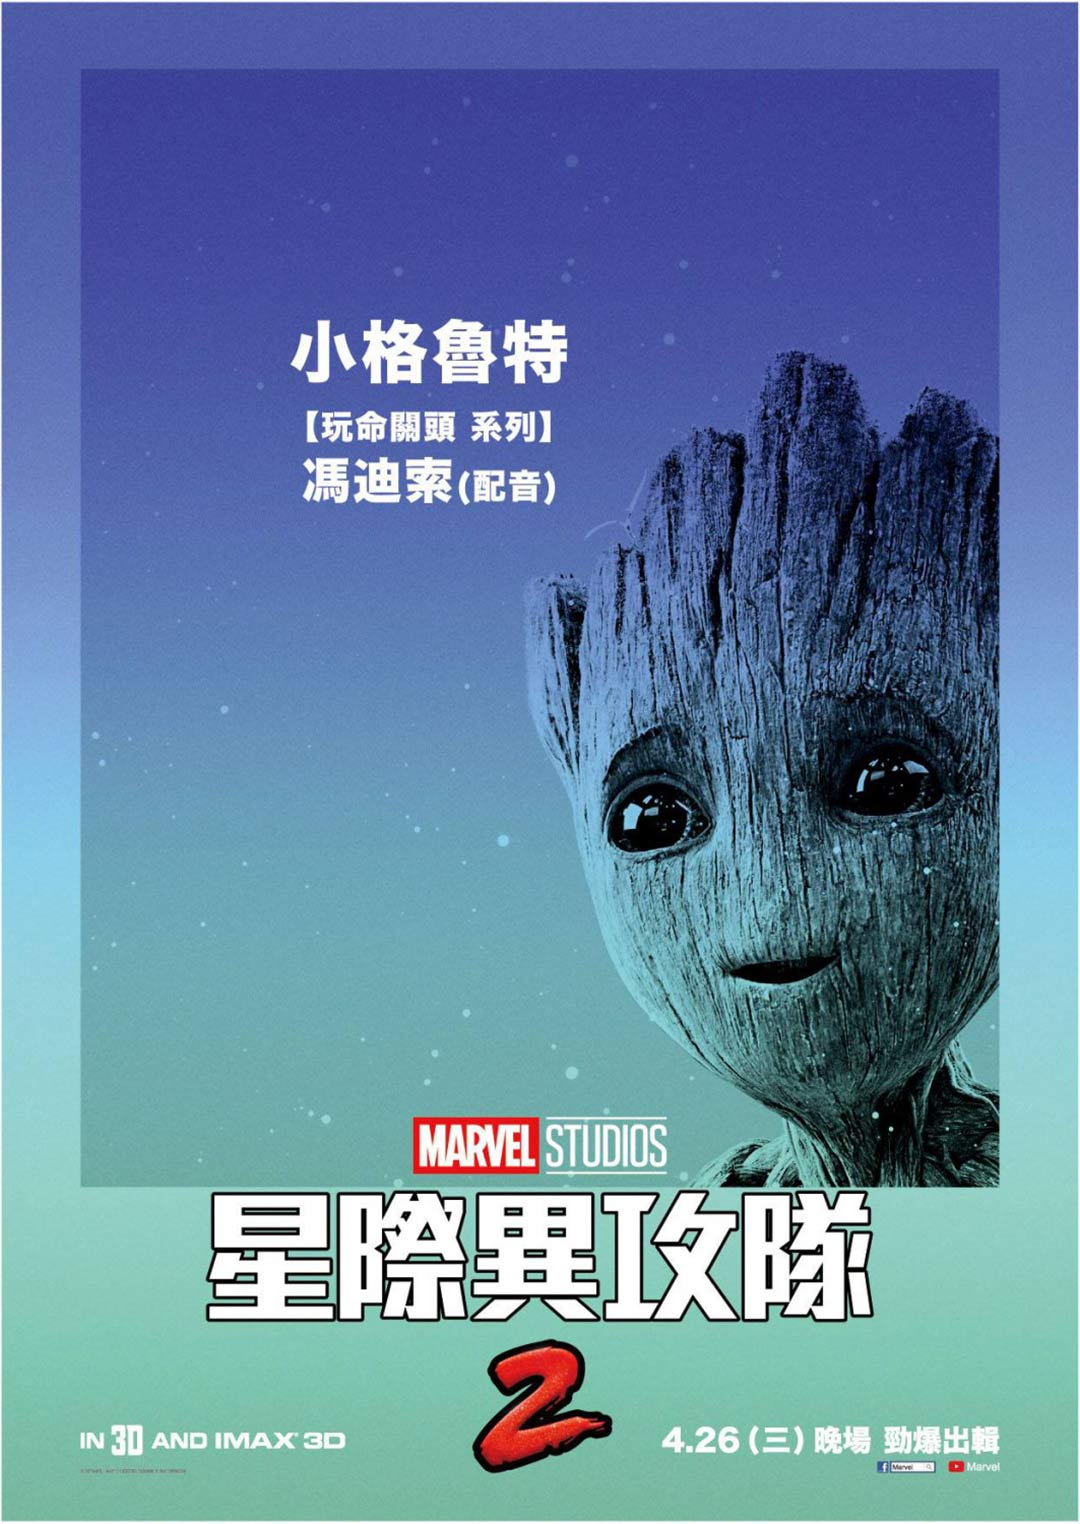 Guardians of the Galaxy Vol. 2 Poster #20